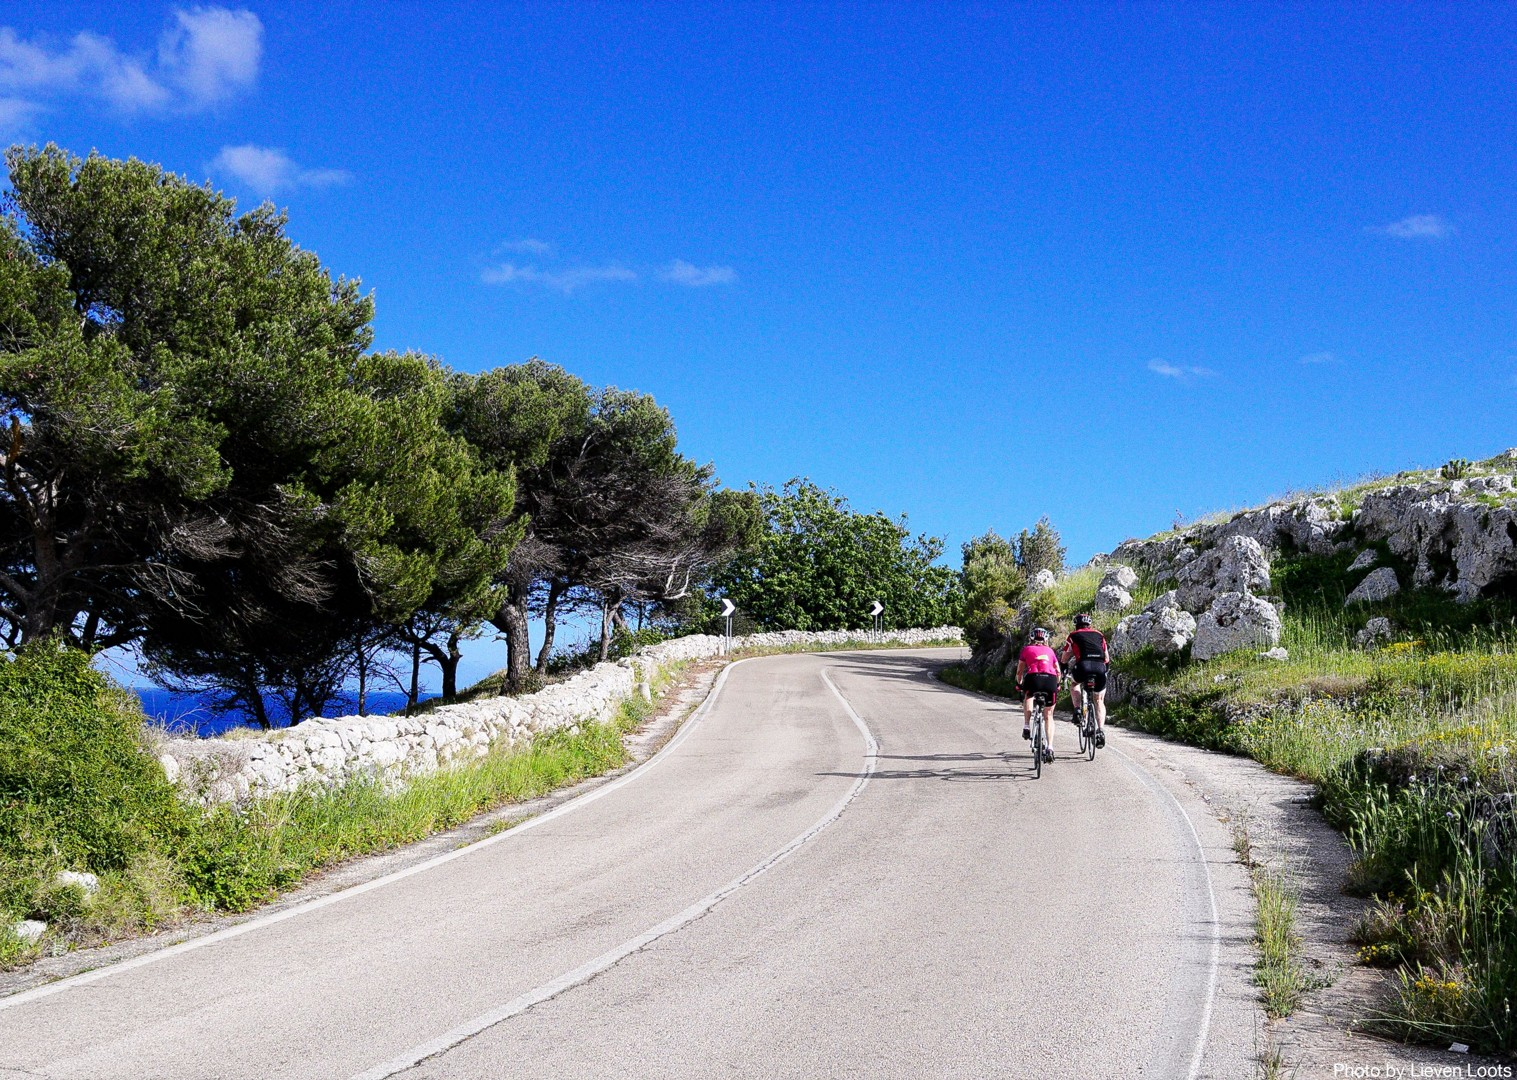 italy-puglia-self-guided-cycling.jpg - Italy - Puglia - The Heel of Italy - Self-Guided Road Cycling Holiday - Road Cycling